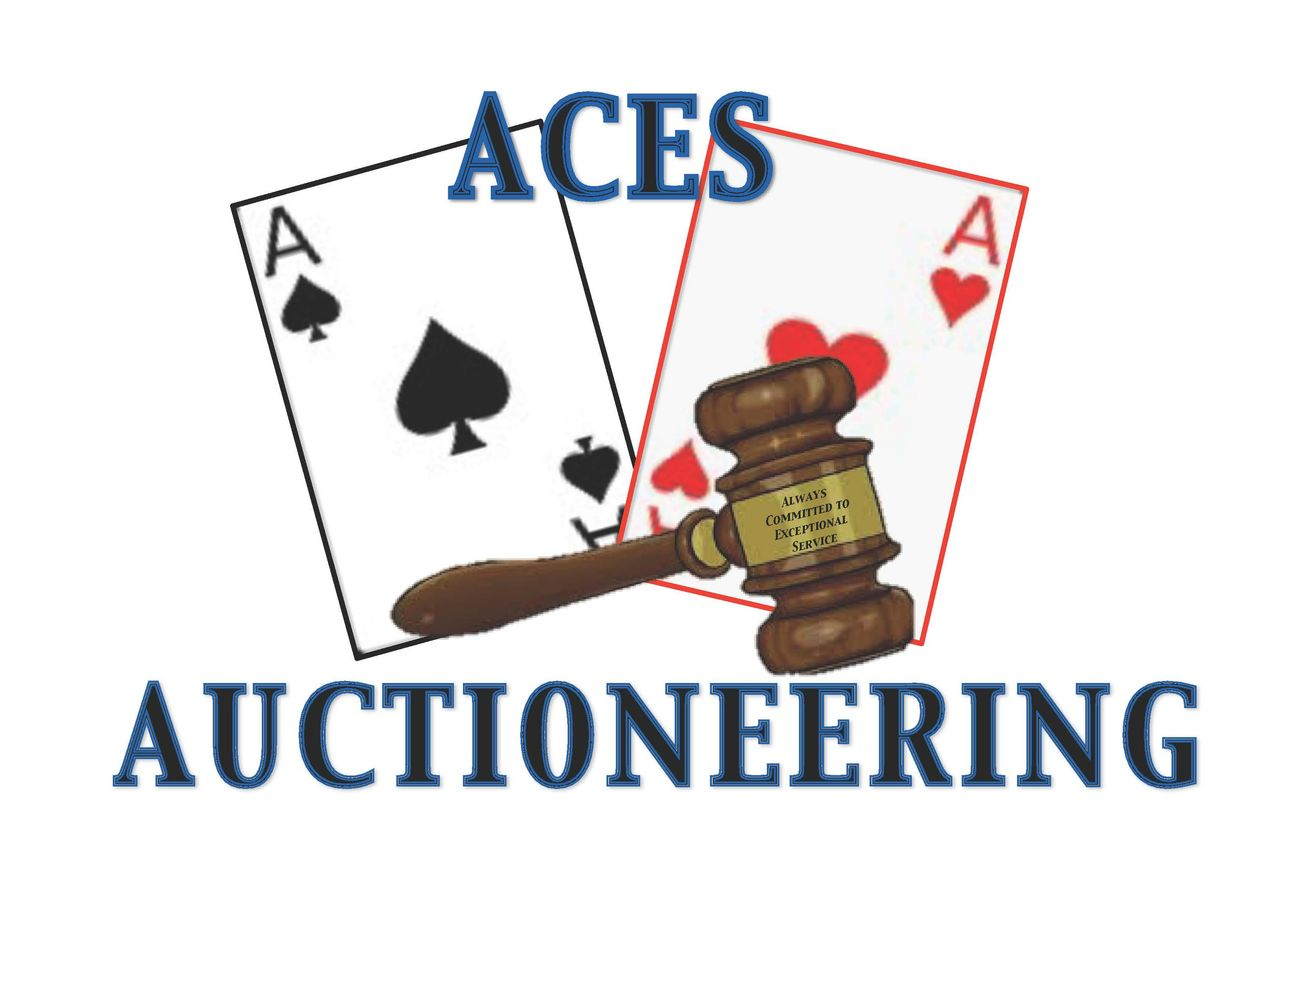 Aces Auctioneering Limited - Telephone: 780-914-8136Address:City: Spruce GroveProvince: AlbertaWebiste:https://acesauctioneering.com